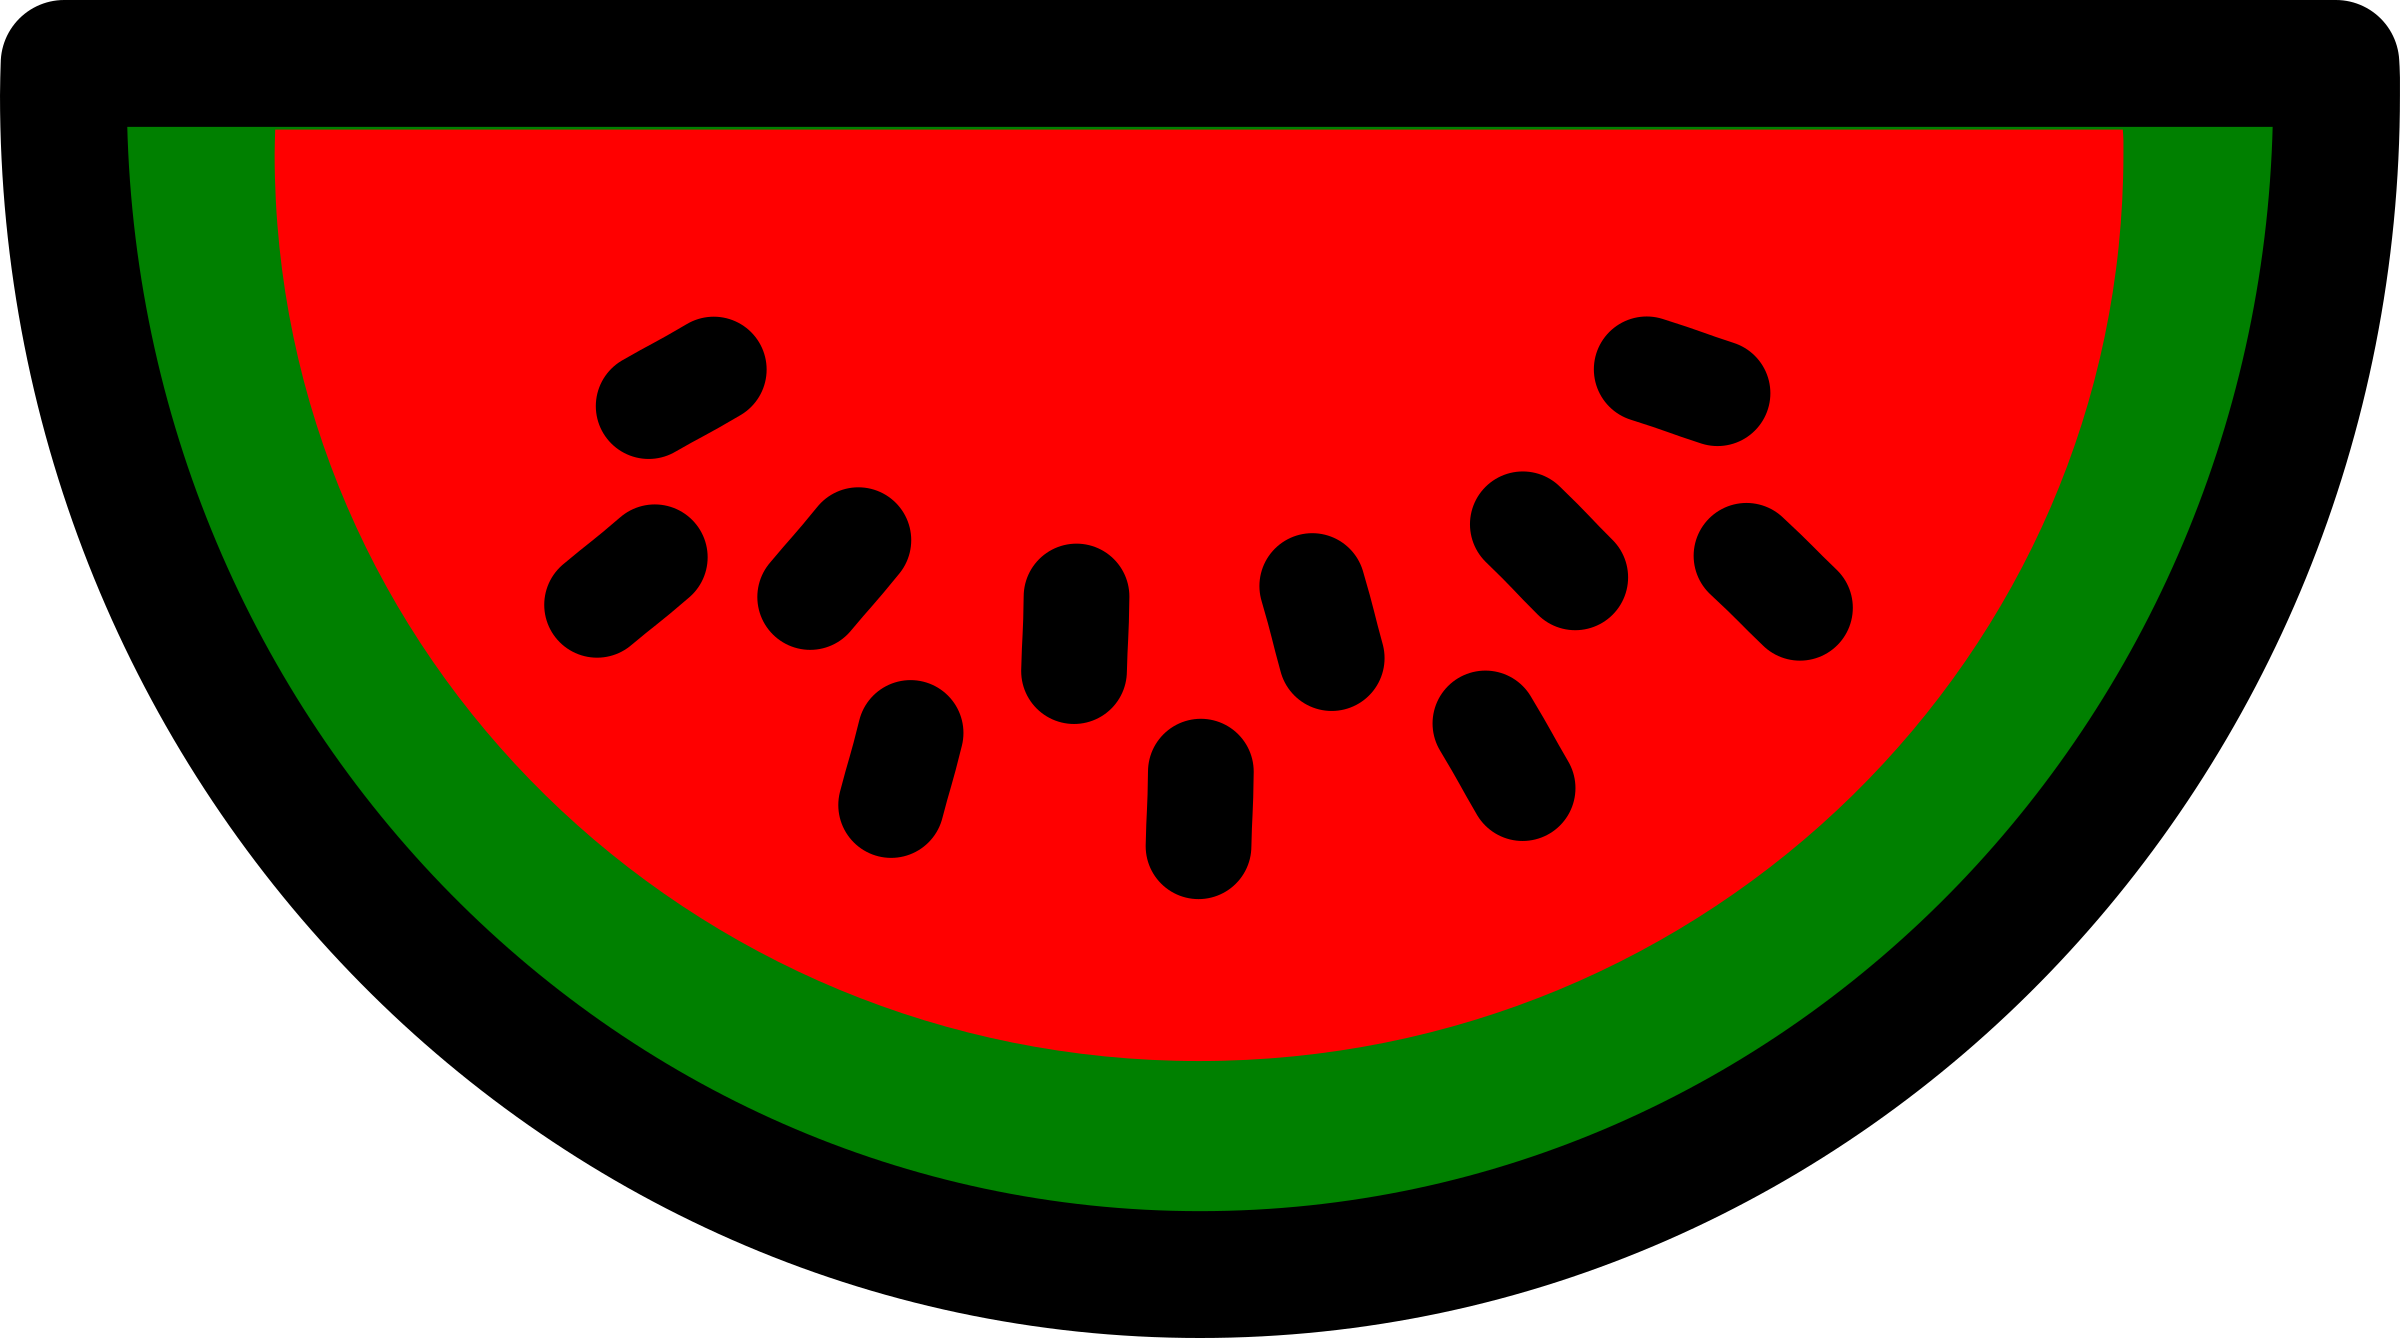 Icon big image png. Watermelon clipart simple